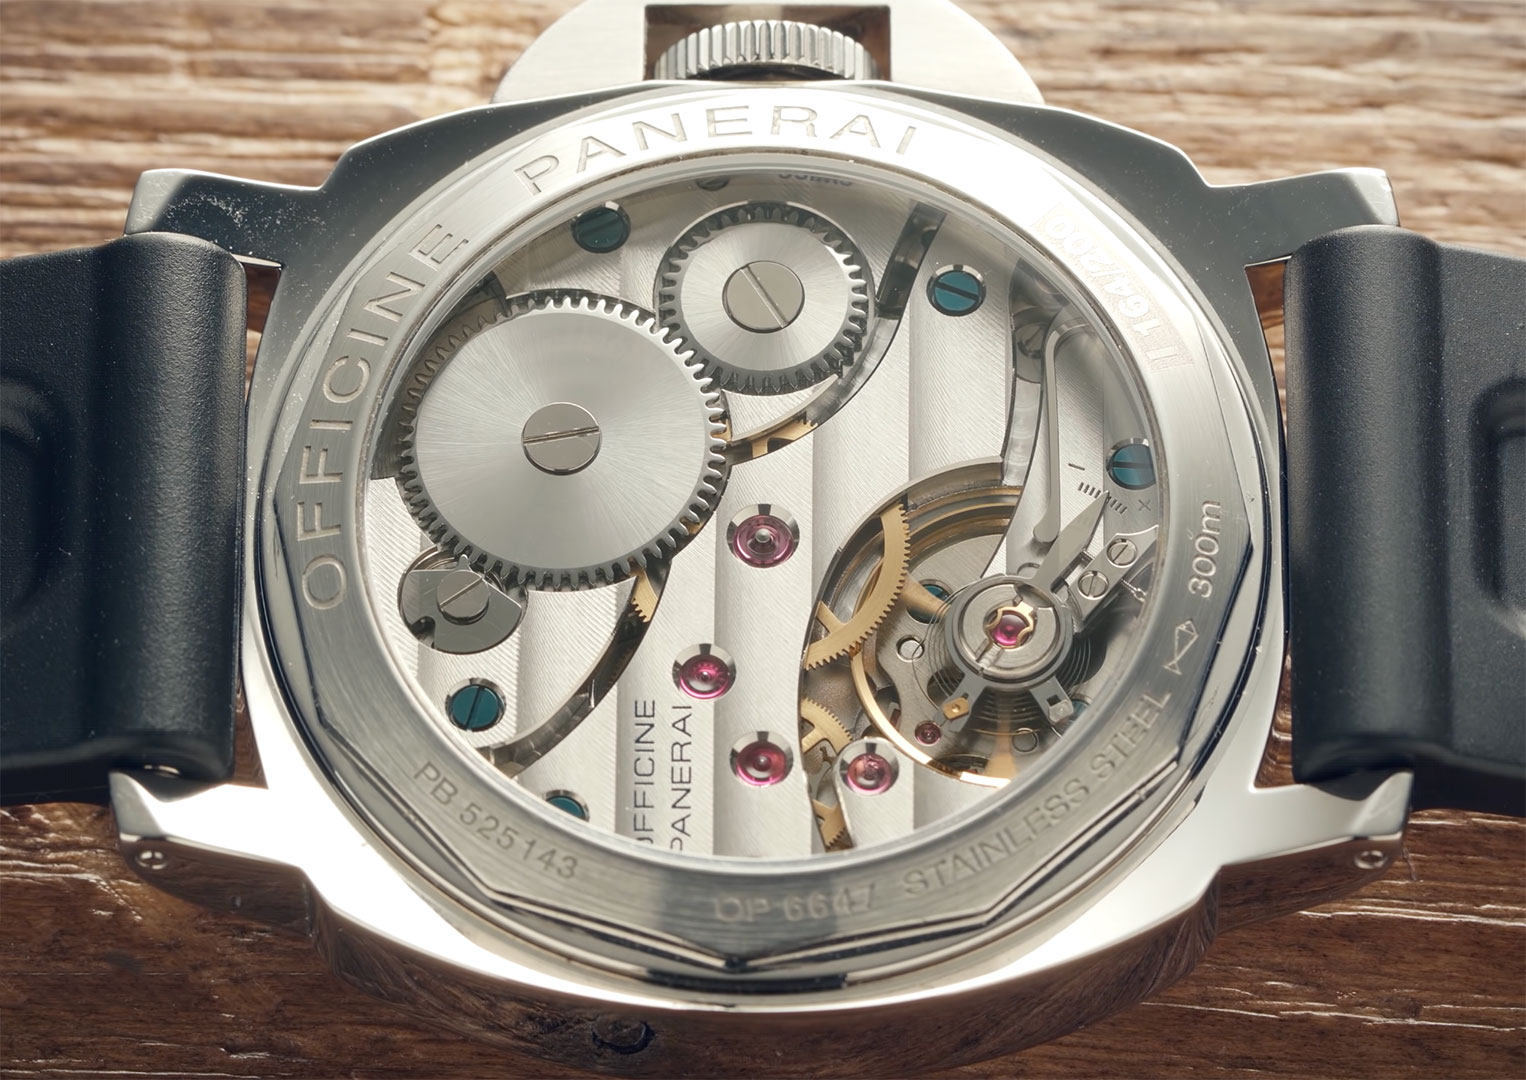 The Panerai Luminor was first released in 1955